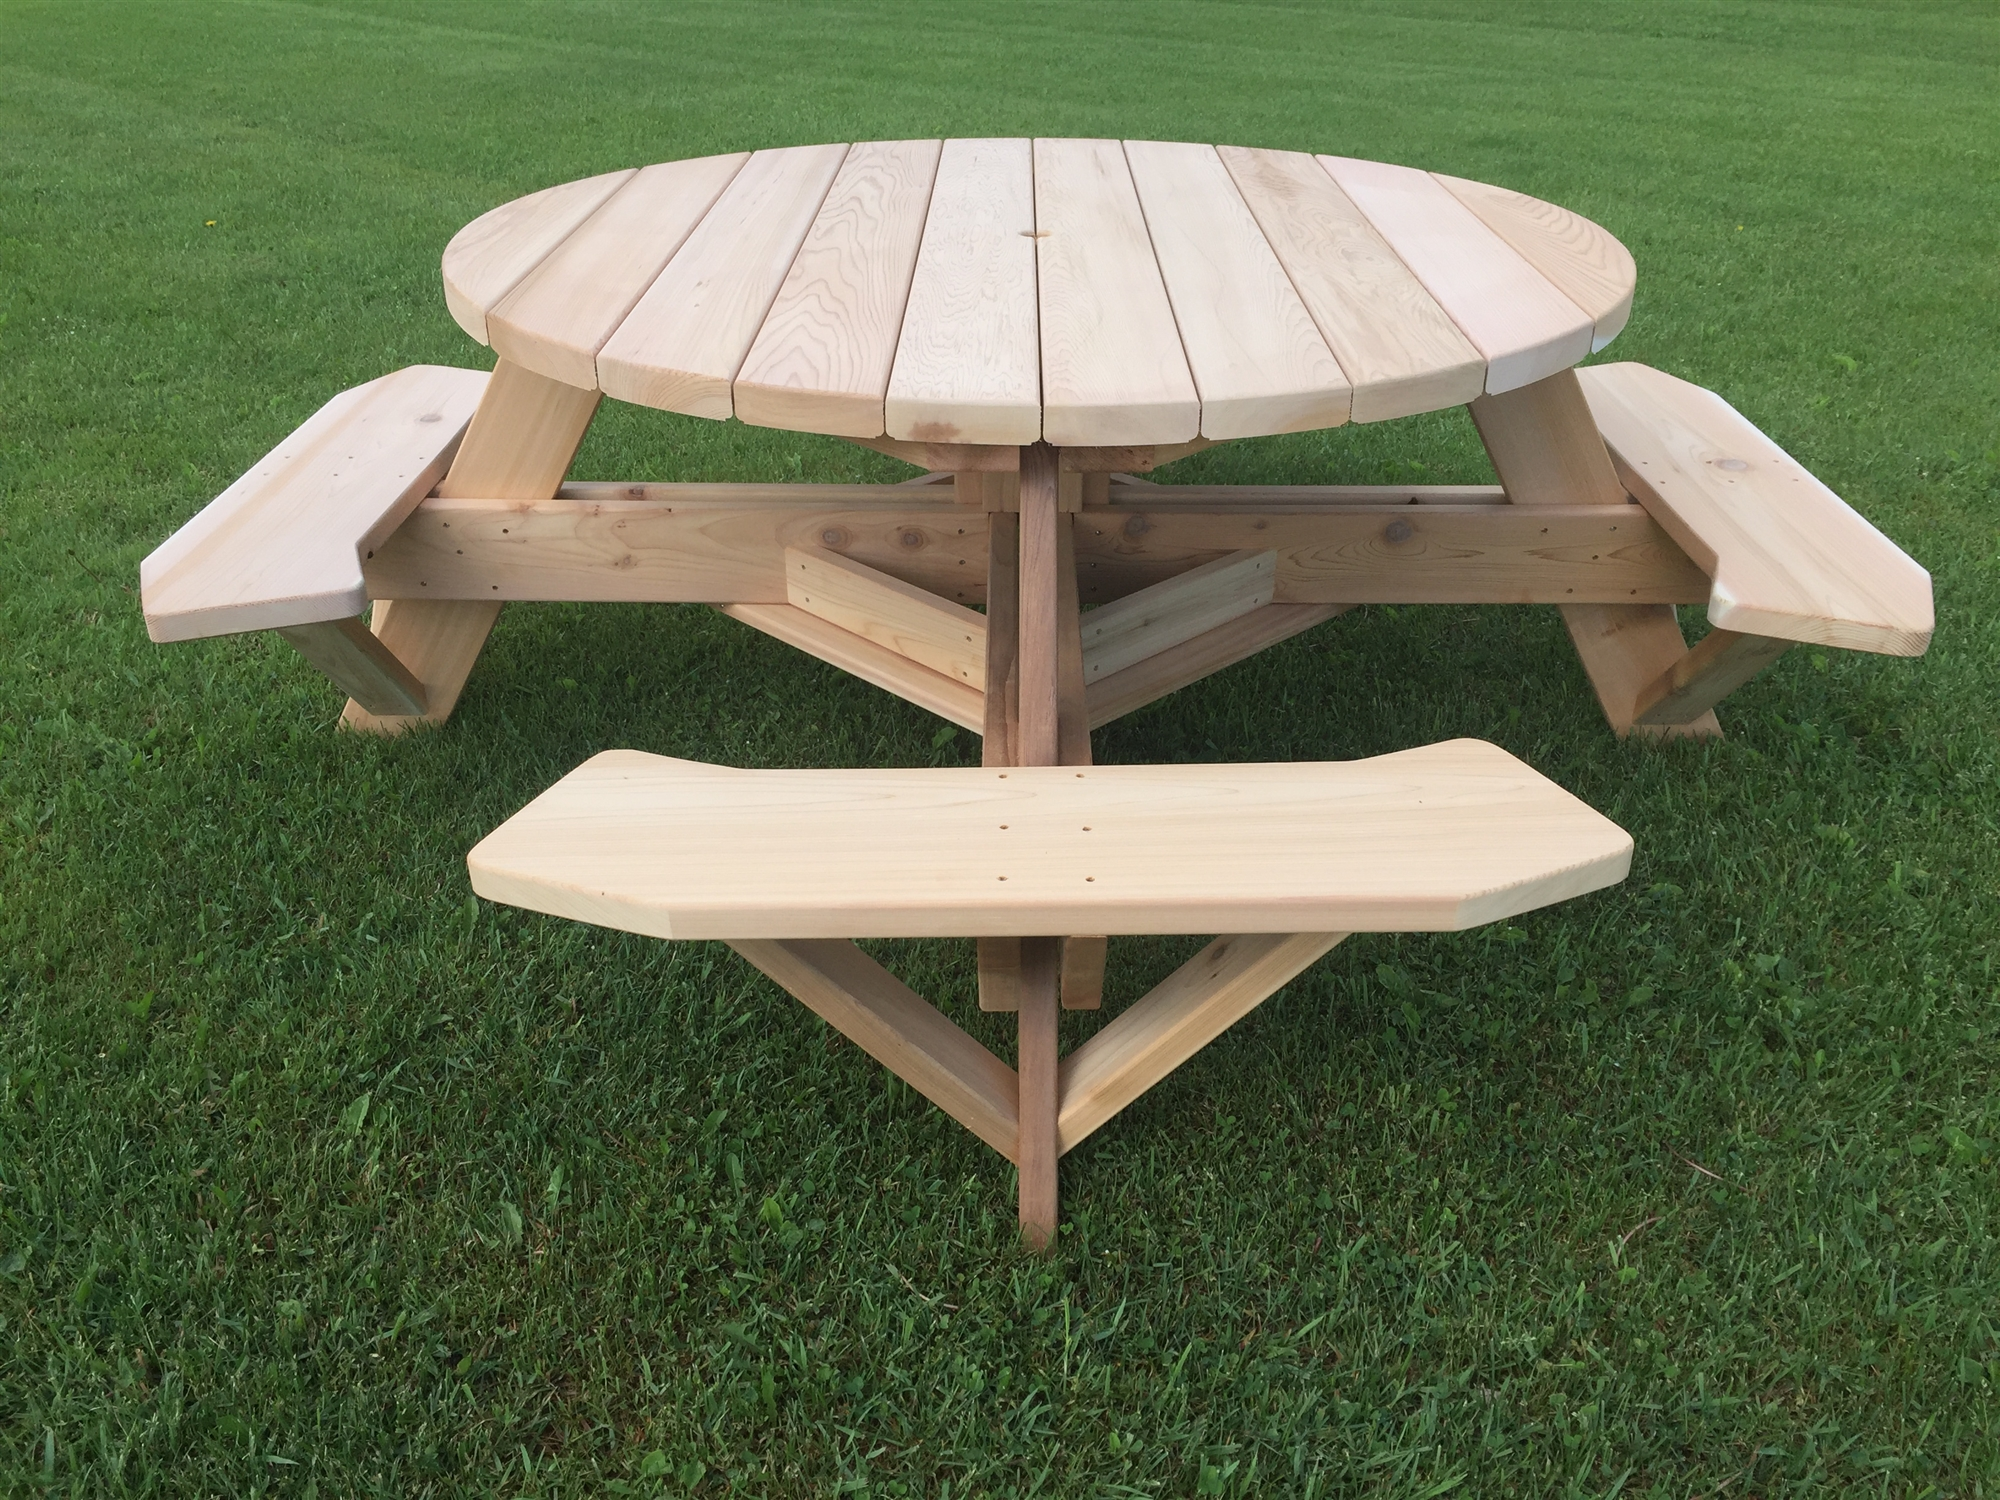 How To Make A Round Picnic Table With Seats, Edit… | Carline Mclamb